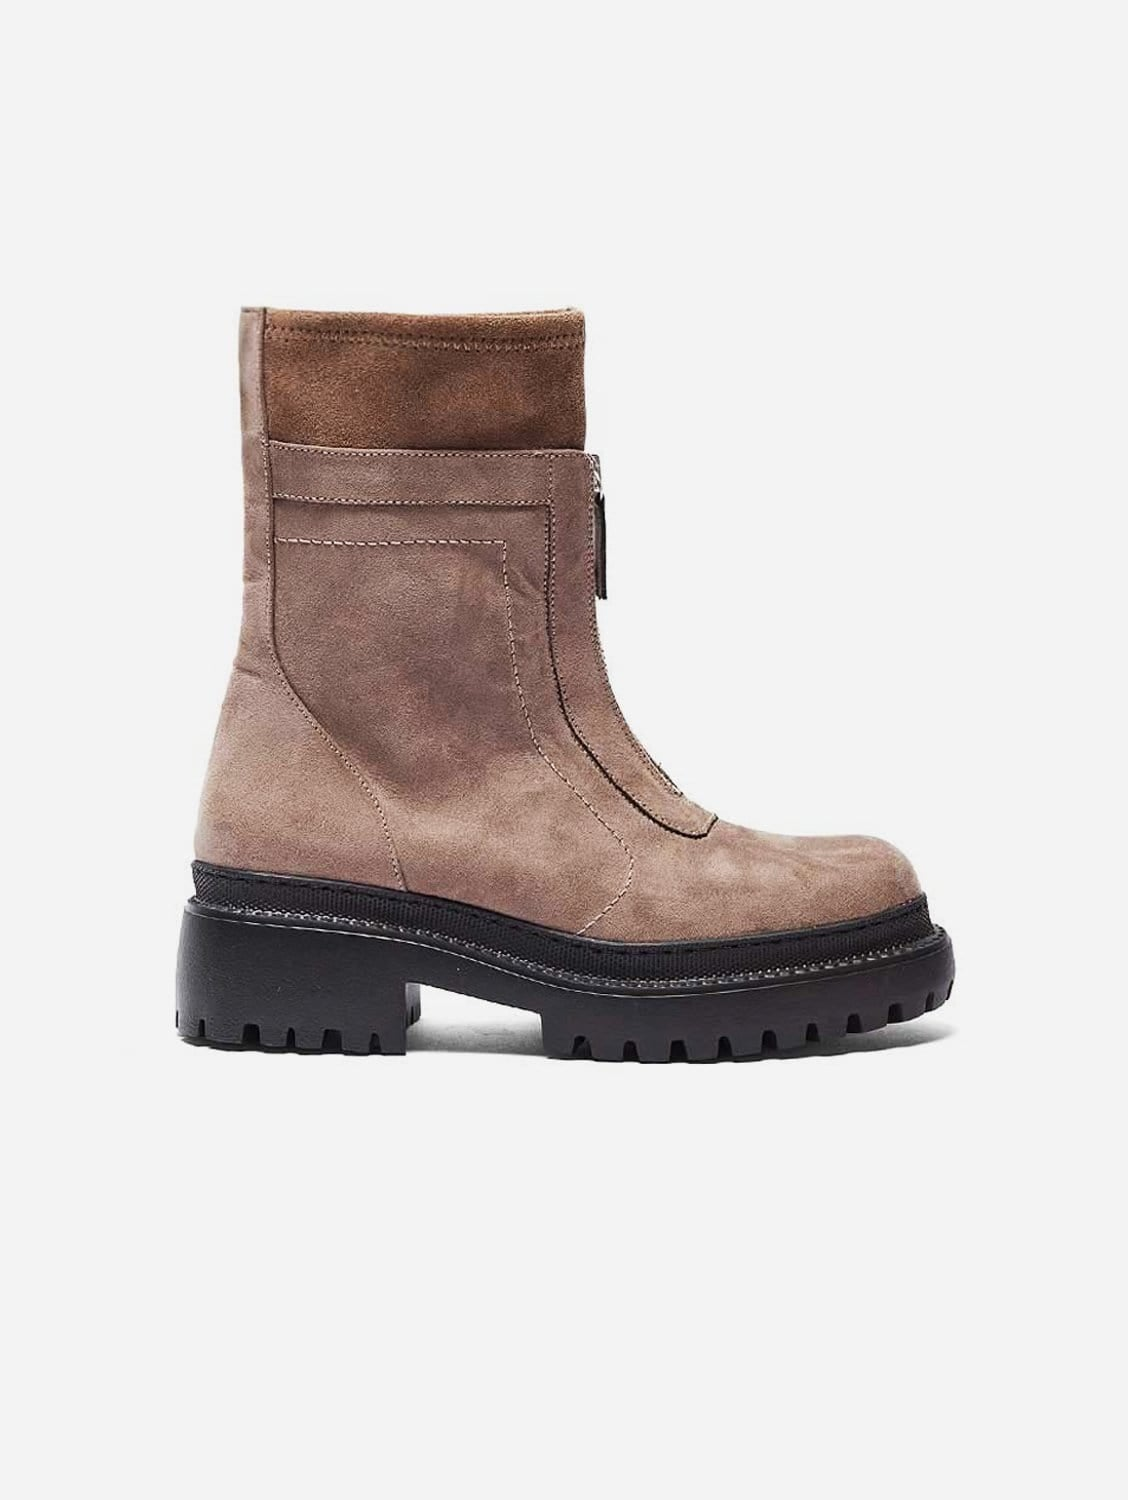 Lidia Recycled Polyester Vegan Suede Winter Boots   Taupe